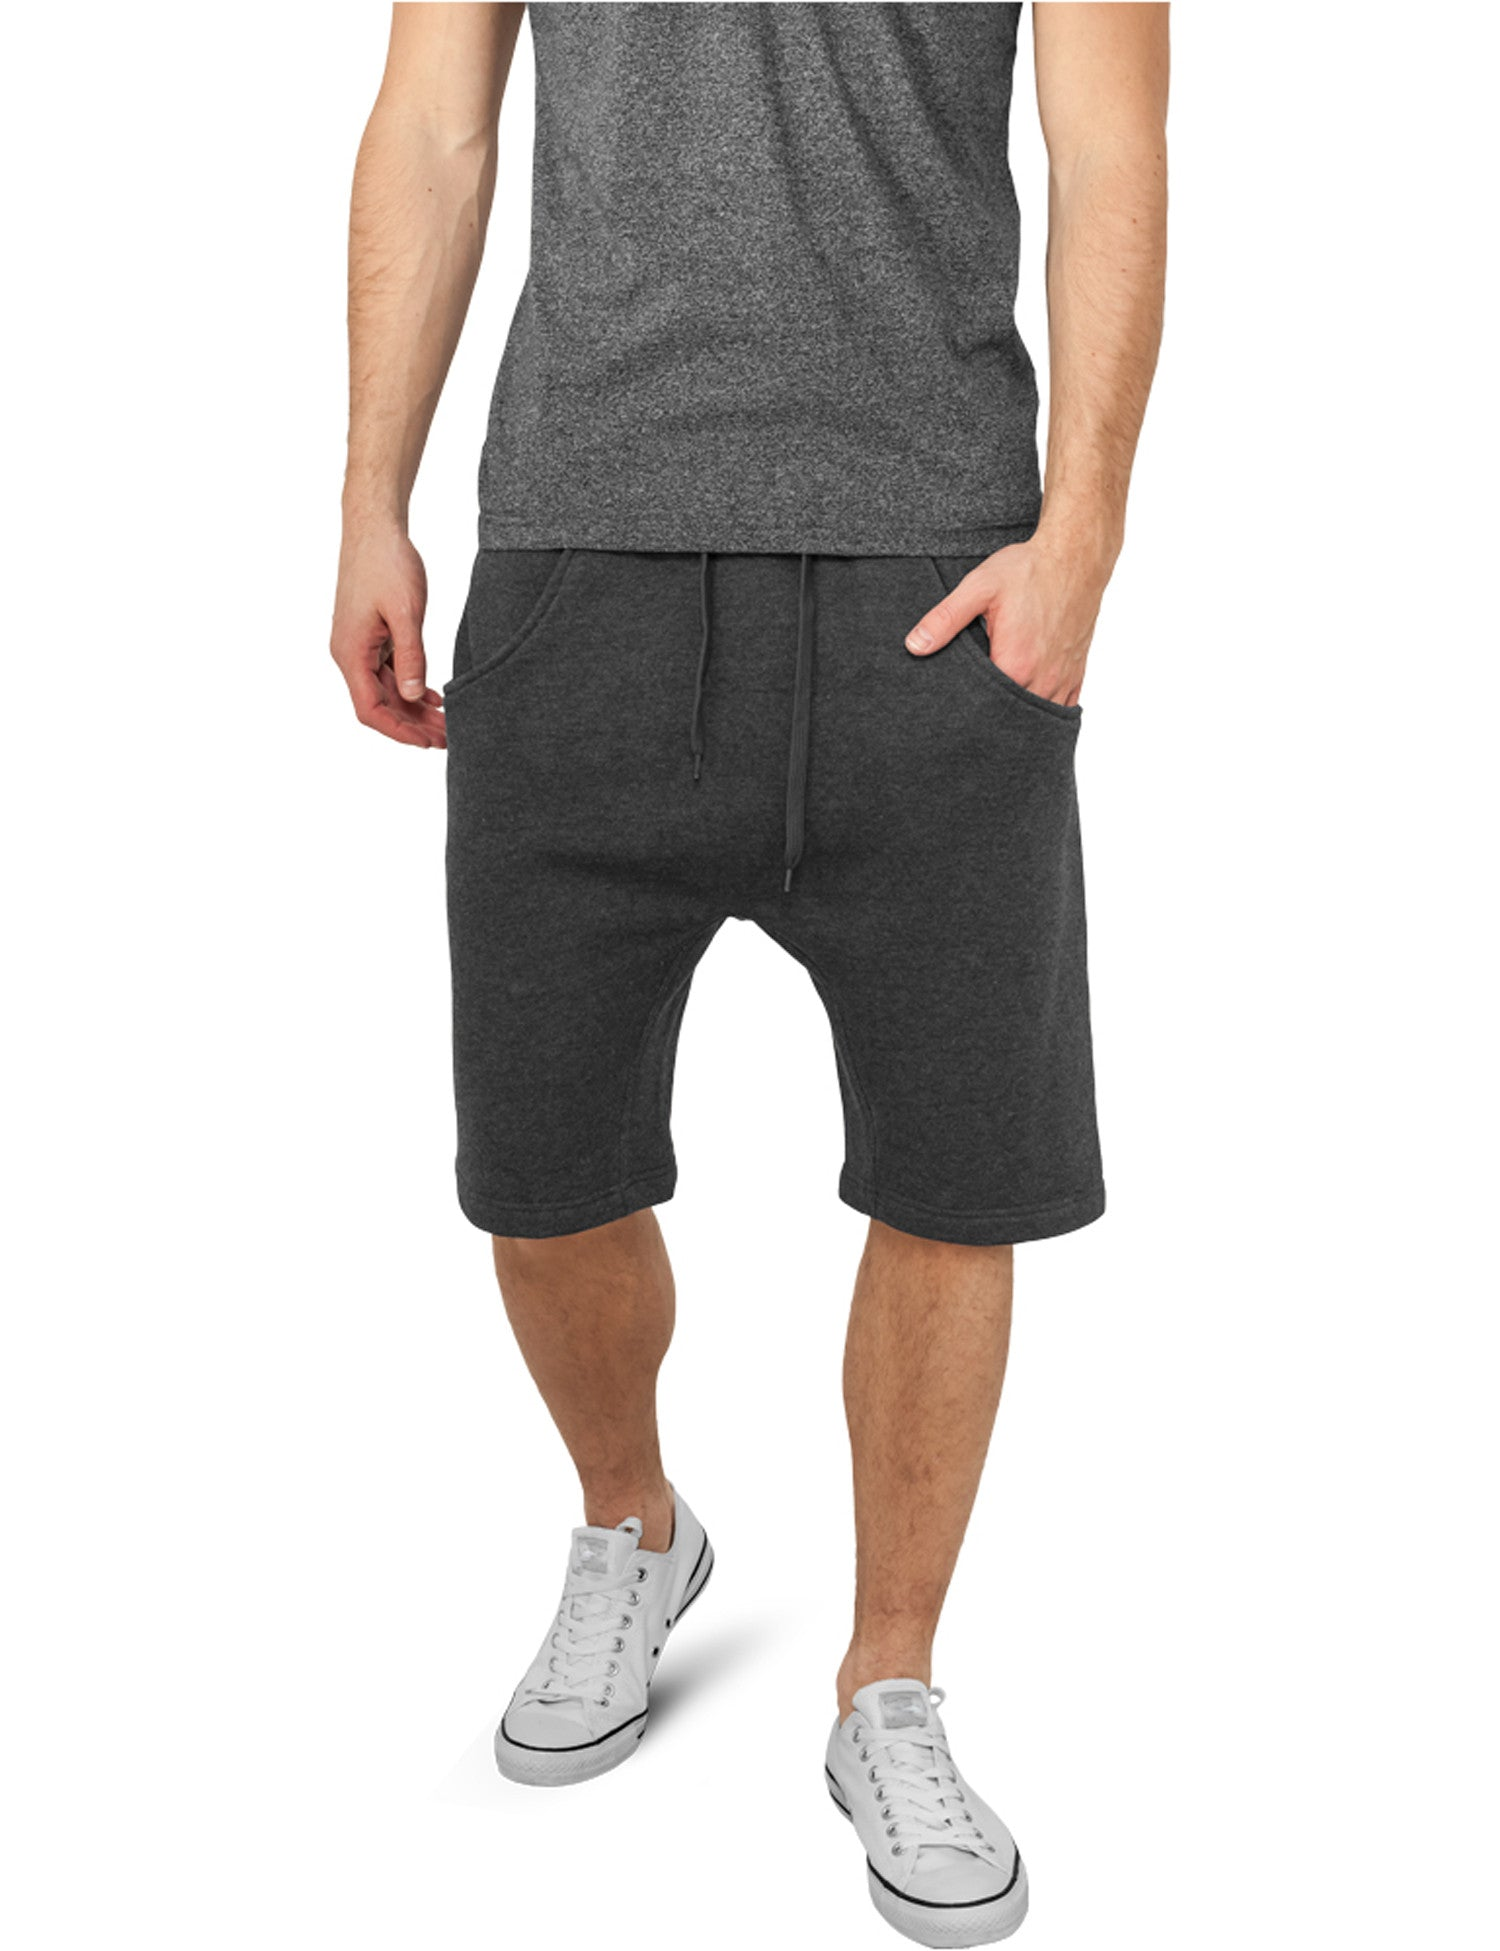 Light Deep Crotch Sweatshorts TB662 Grey